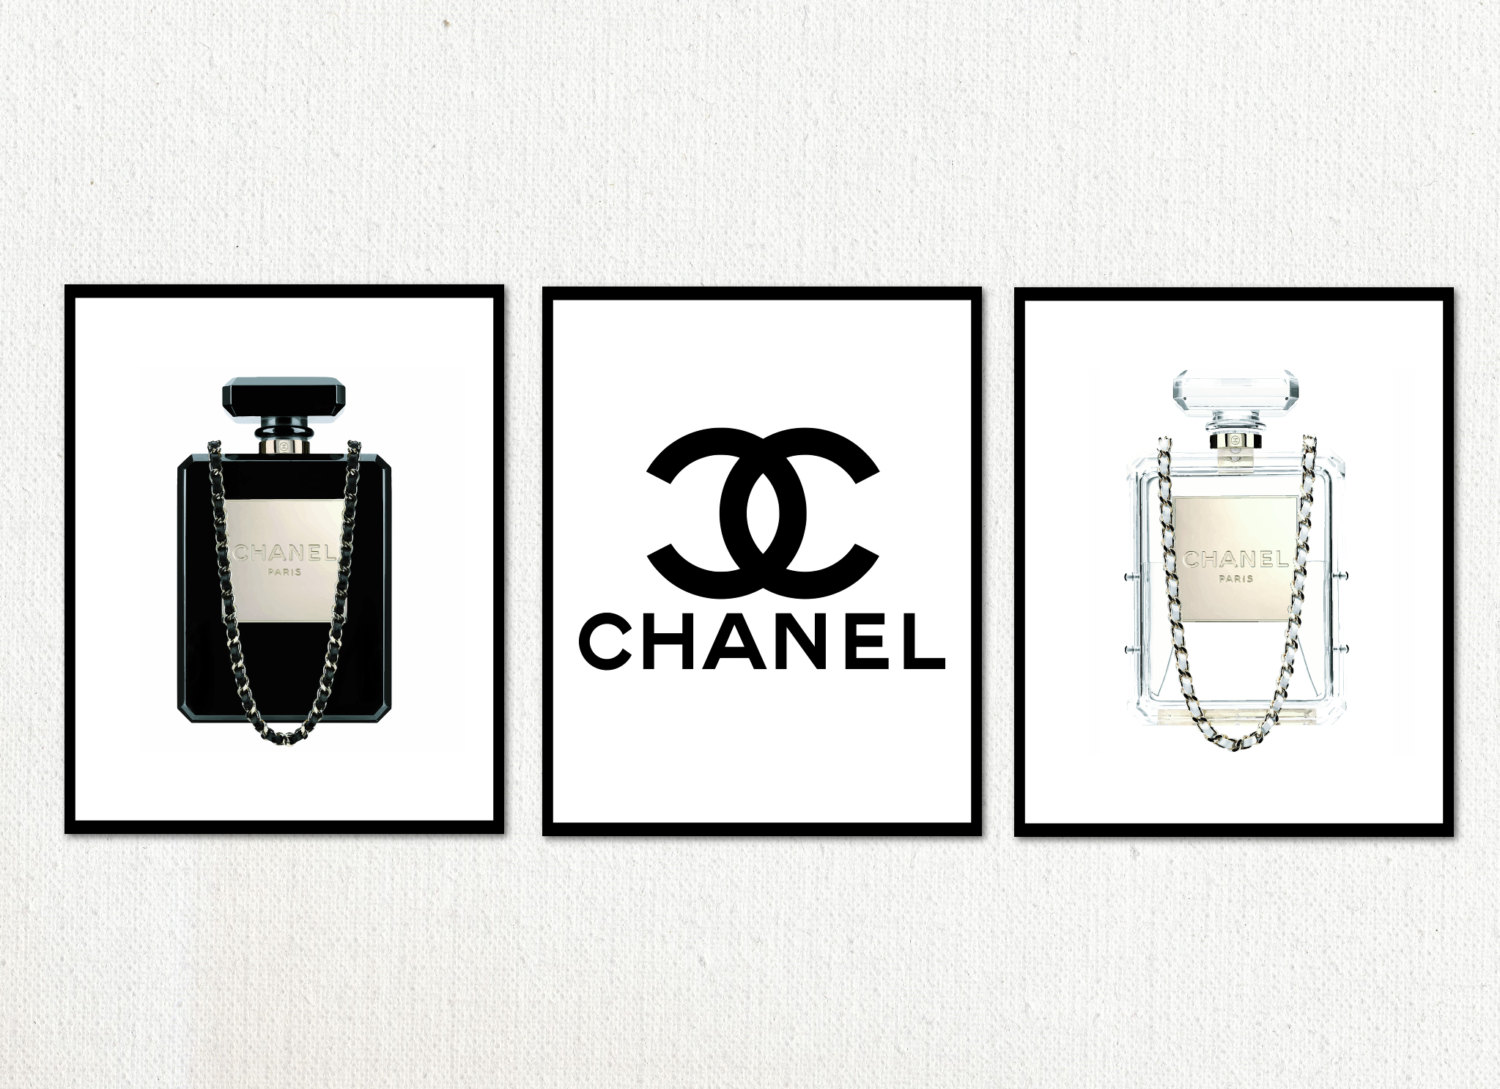 It is an image of Printable Chanel Logo for transparent